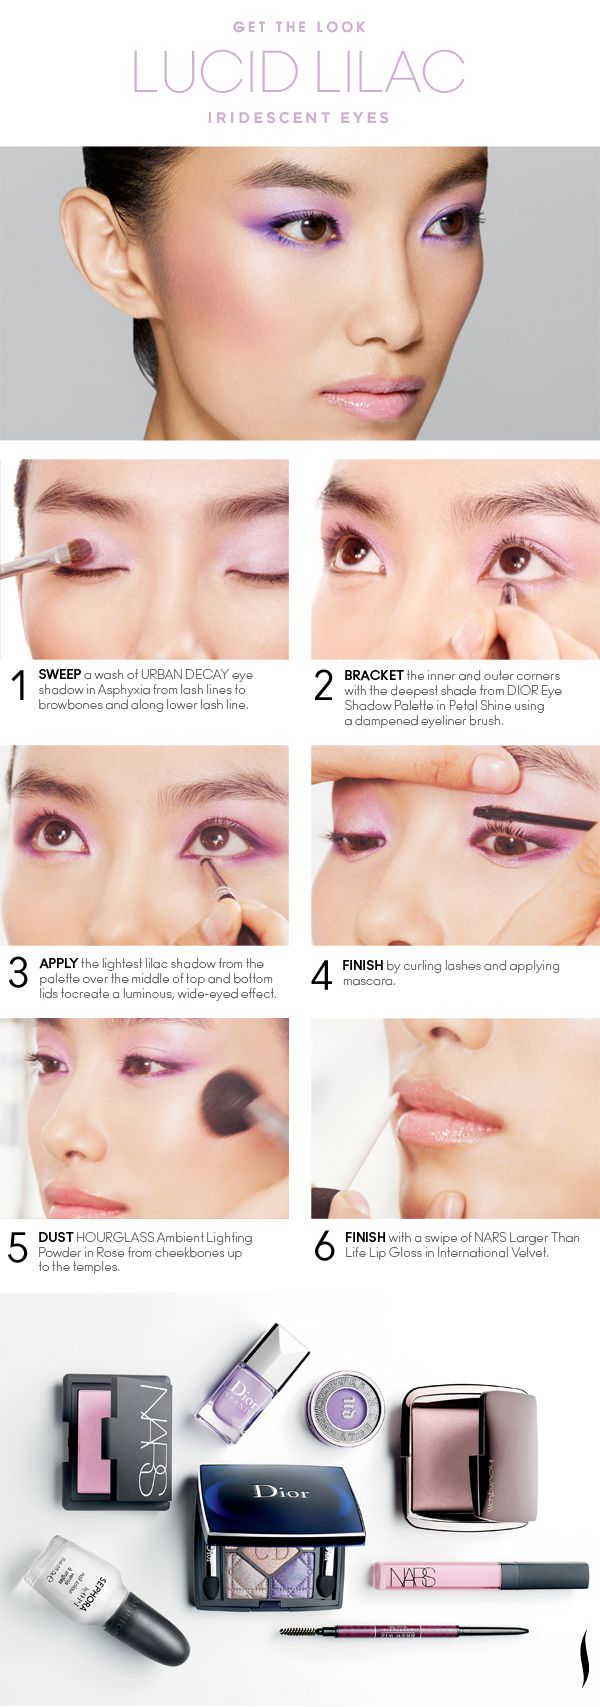 Get the Look: Lucid Lilac Iridescent Eyes